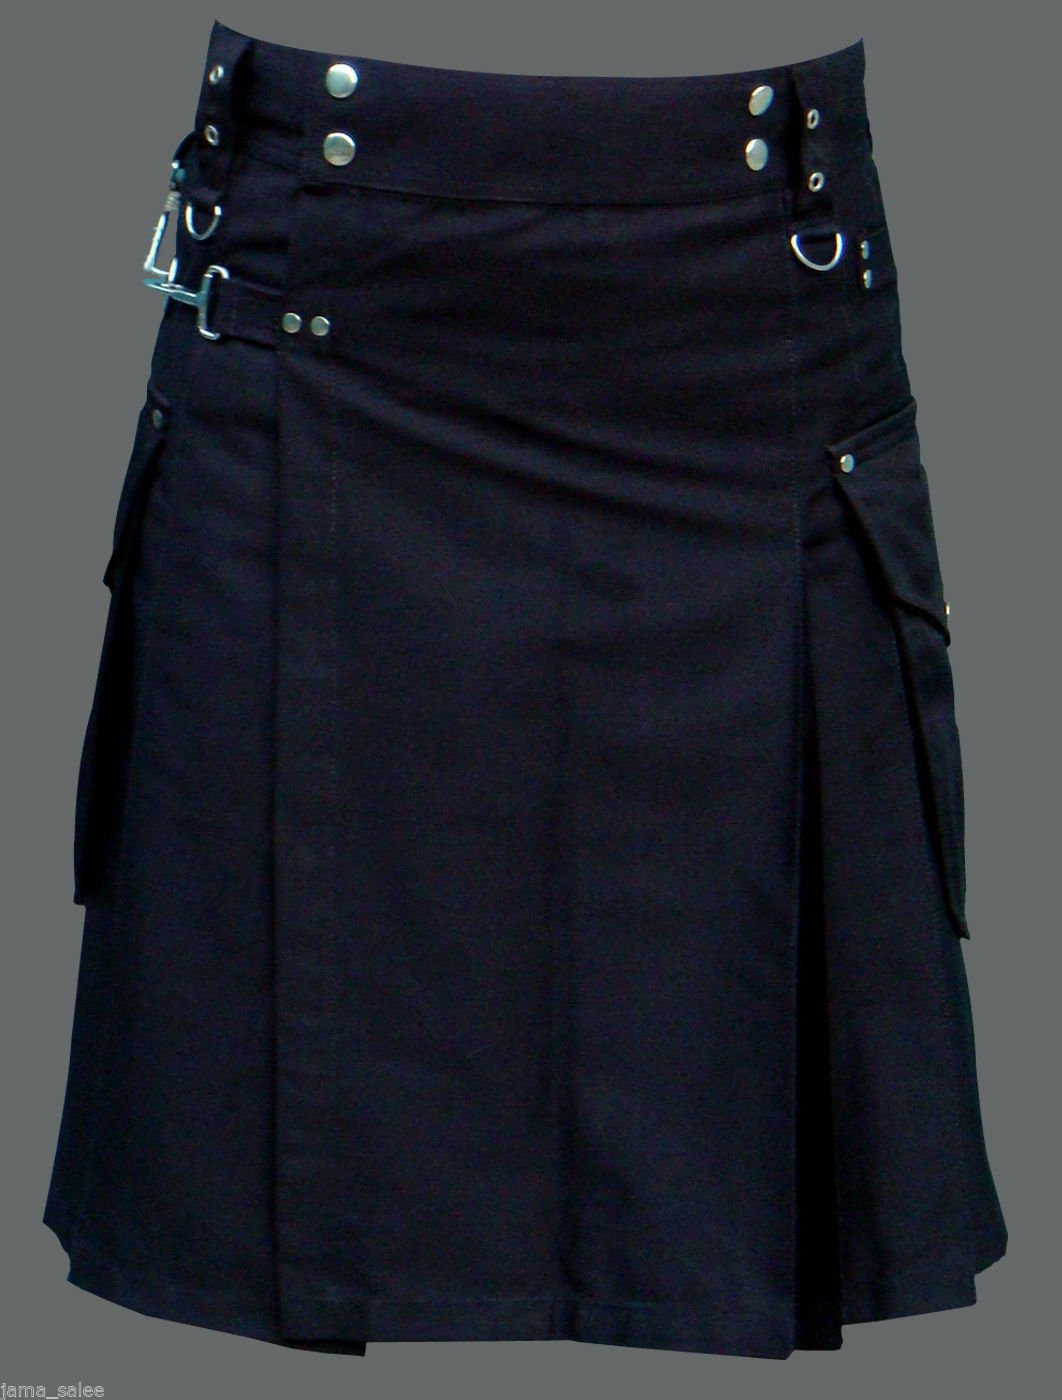 Men 42 Waist Handmade Black Deluxe Utility Kilt 100% Cotton With Cargo Pockets